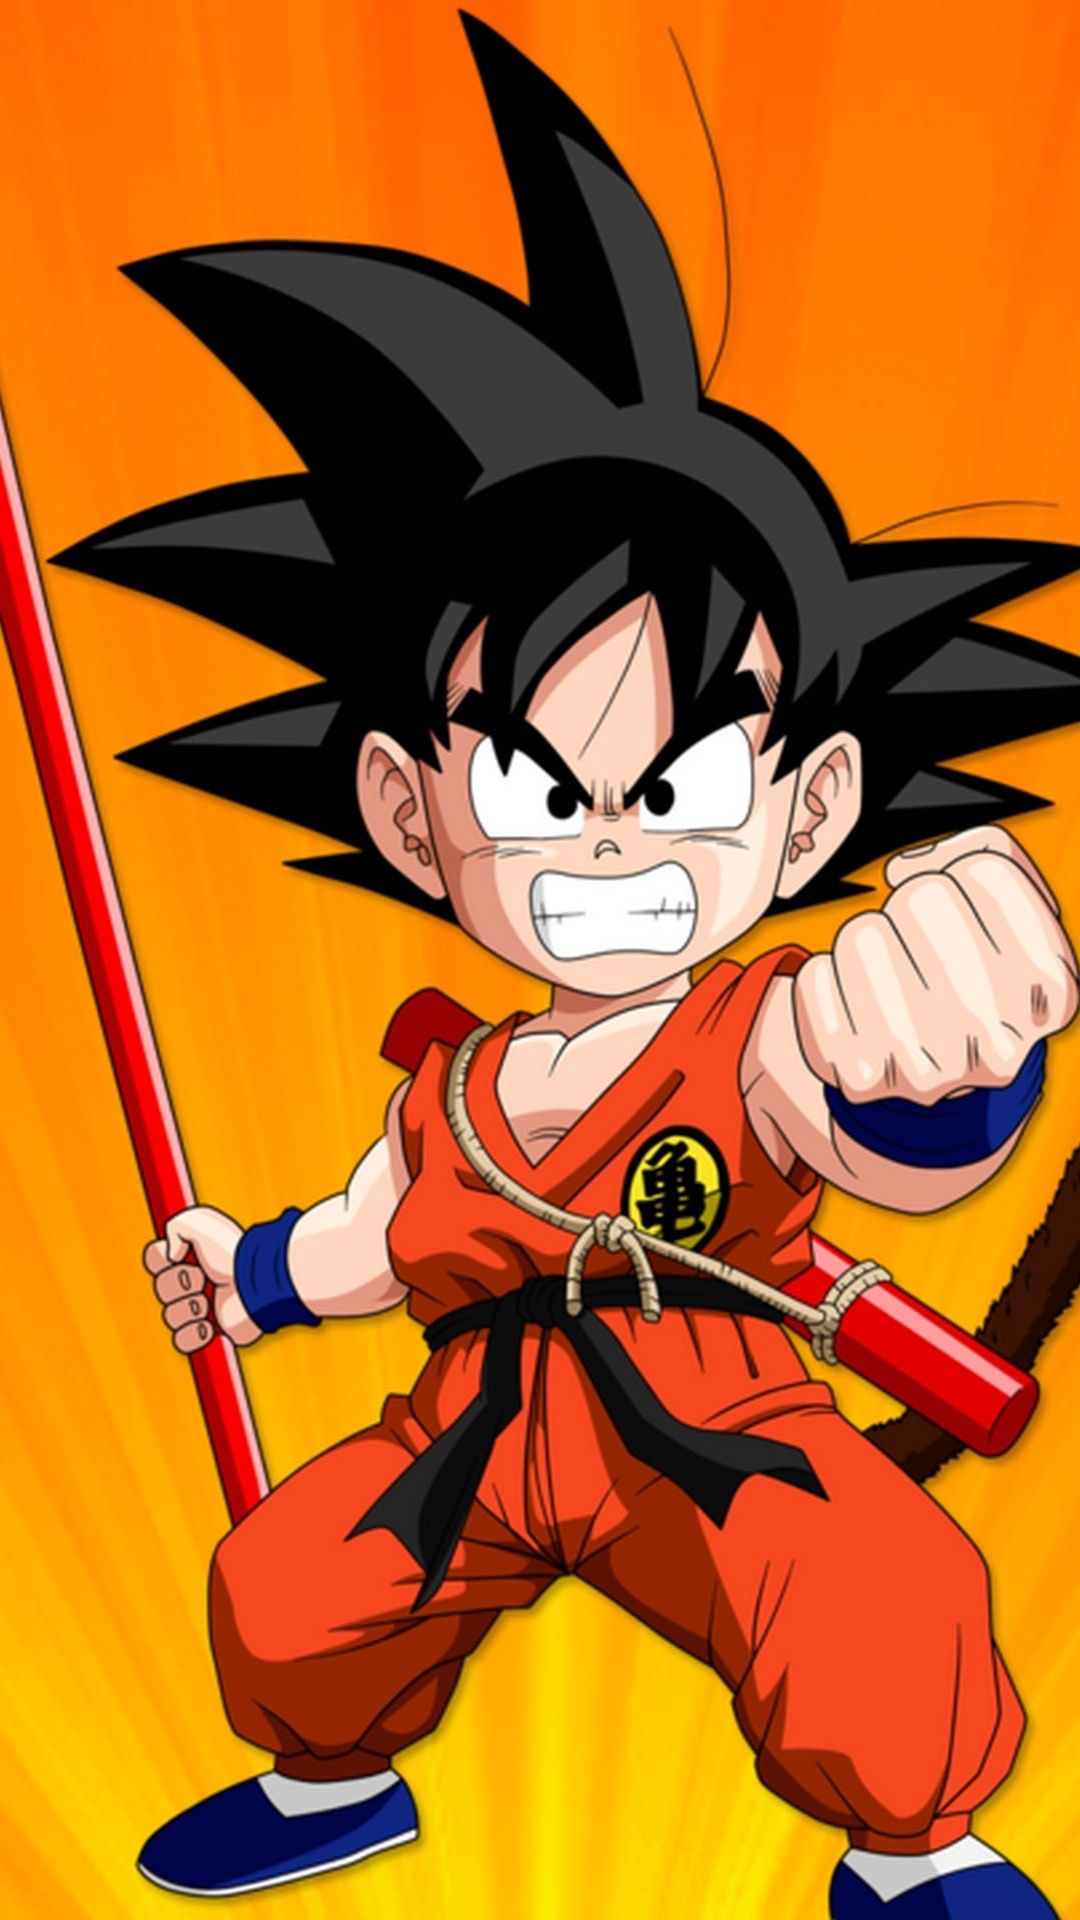 Pin by Daisy on Goku wallpaper (With images) Goku